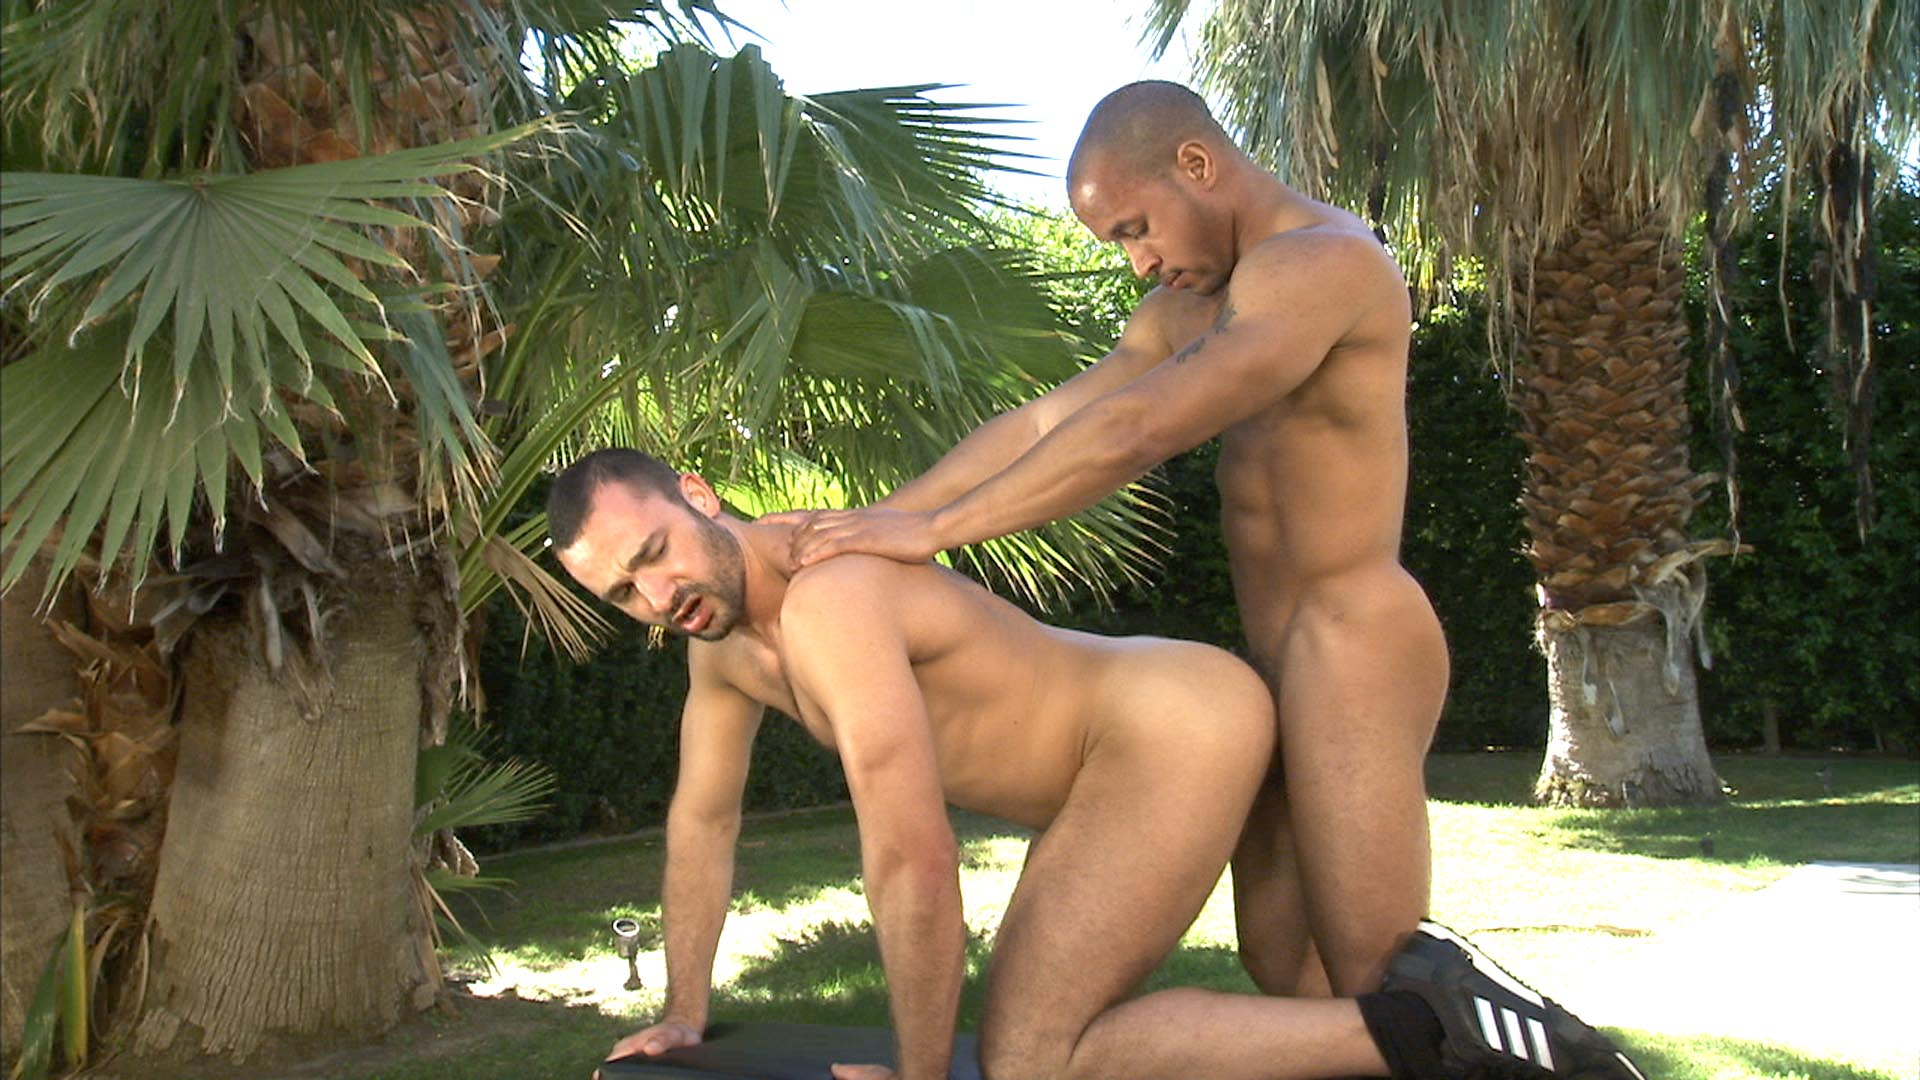 Philippe Ferro and Lawson Kane - Impulse Scene 2